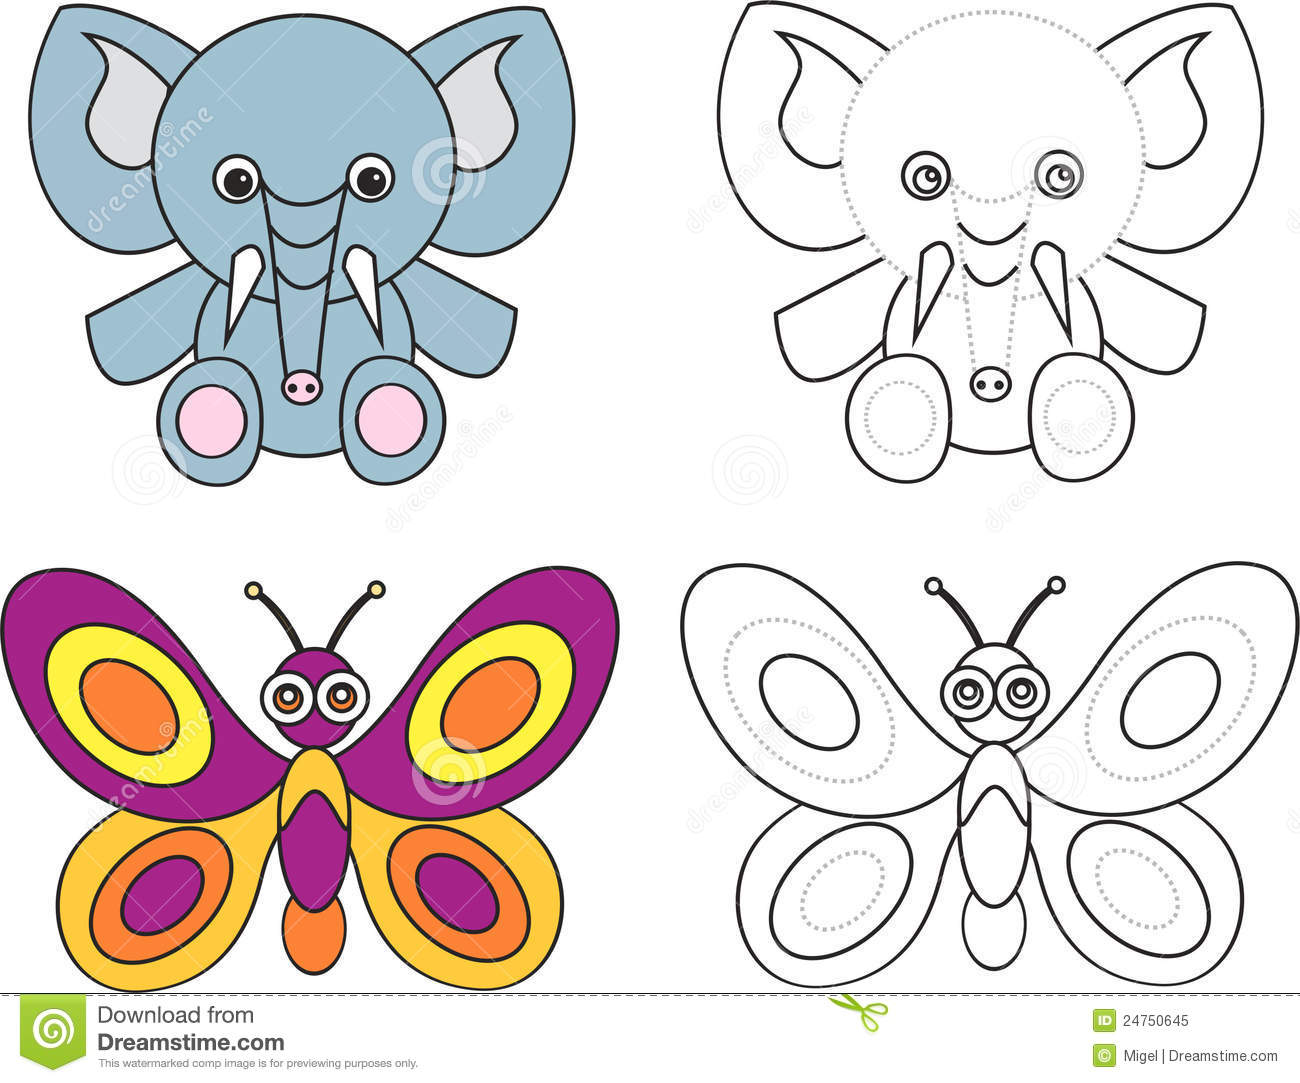 black book butterfly cartoon coloring elephant eps image kids